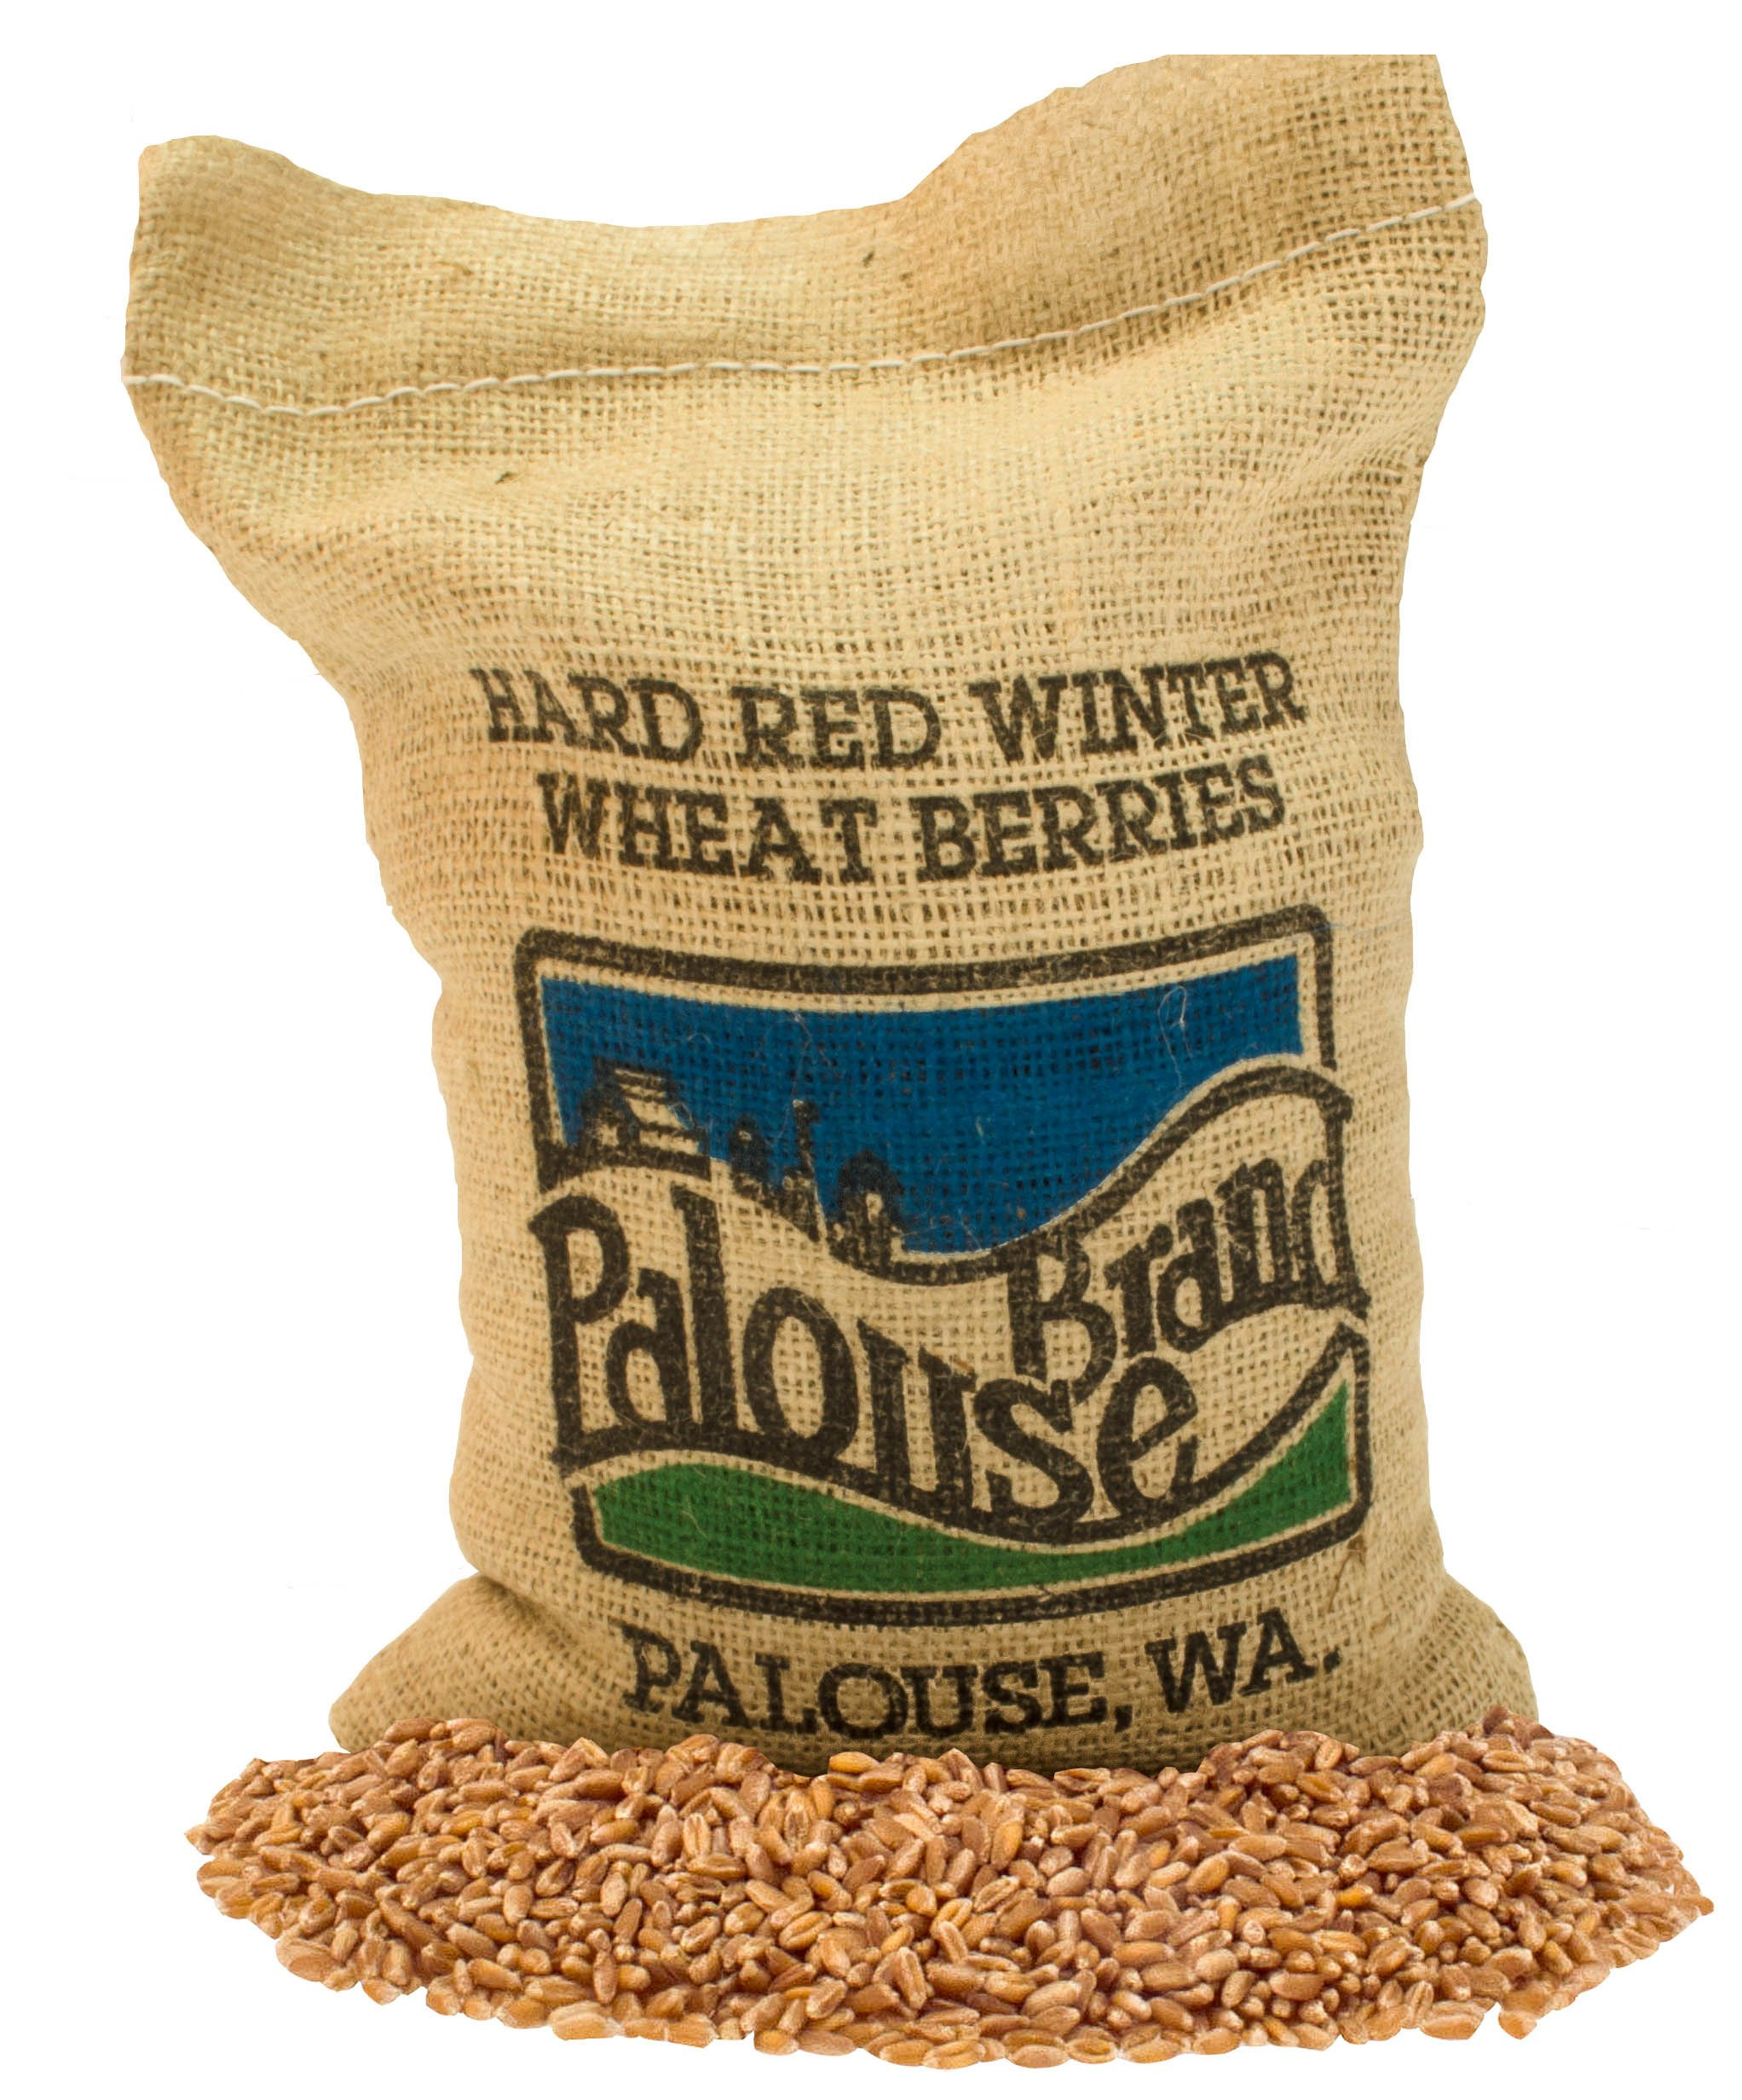 Hard Red Winter Wheat Berries • Non-GMO Project Verified • 5 LBS • 100% Non-Irradiated • Certified Kosher Parve • USA Grown • Field Traced • Burlap Bag